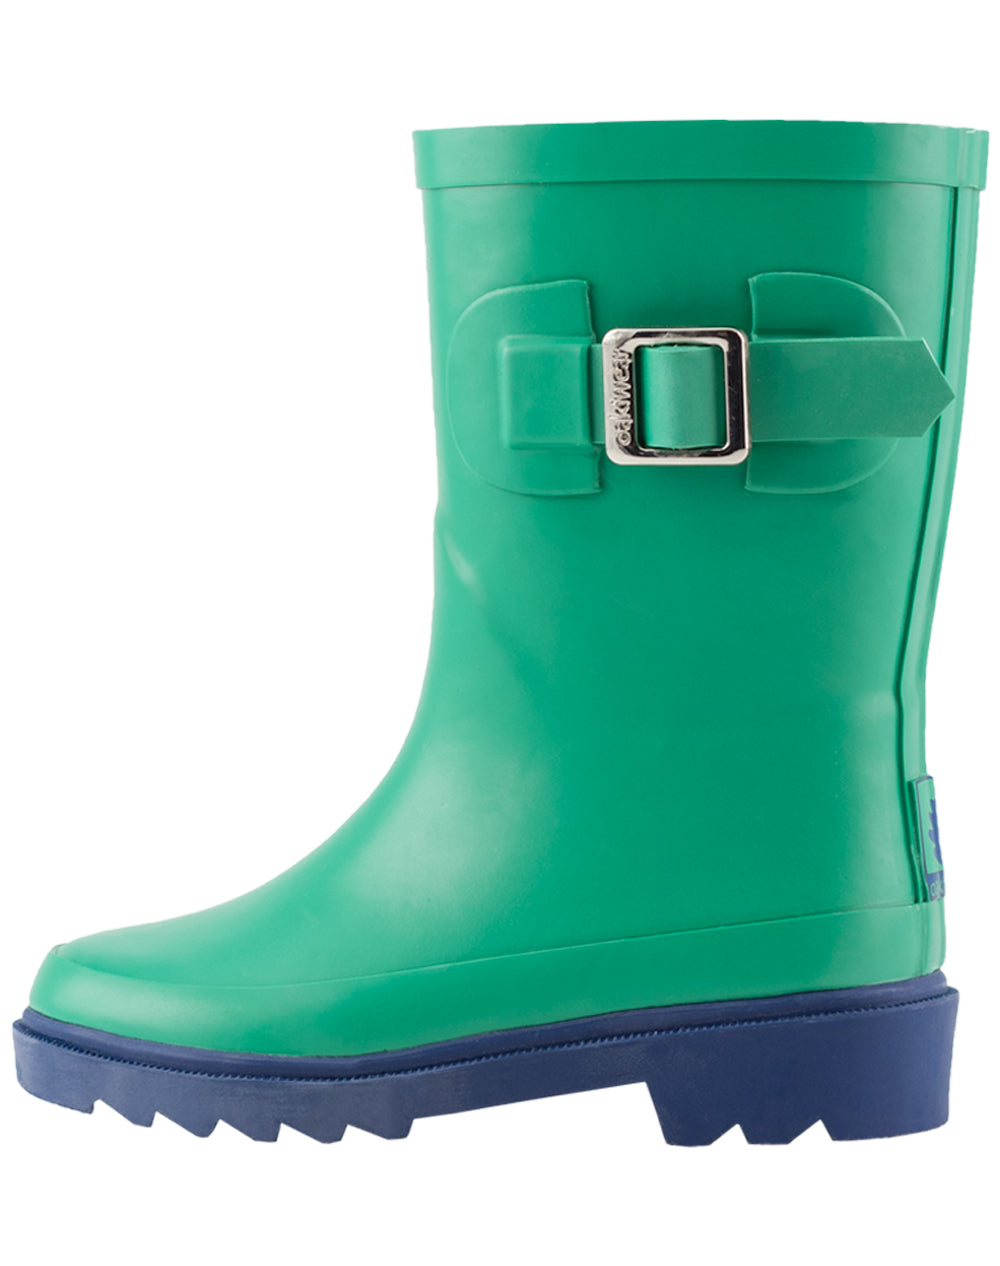 Green & Navy Buckle Rubber Rain Boots